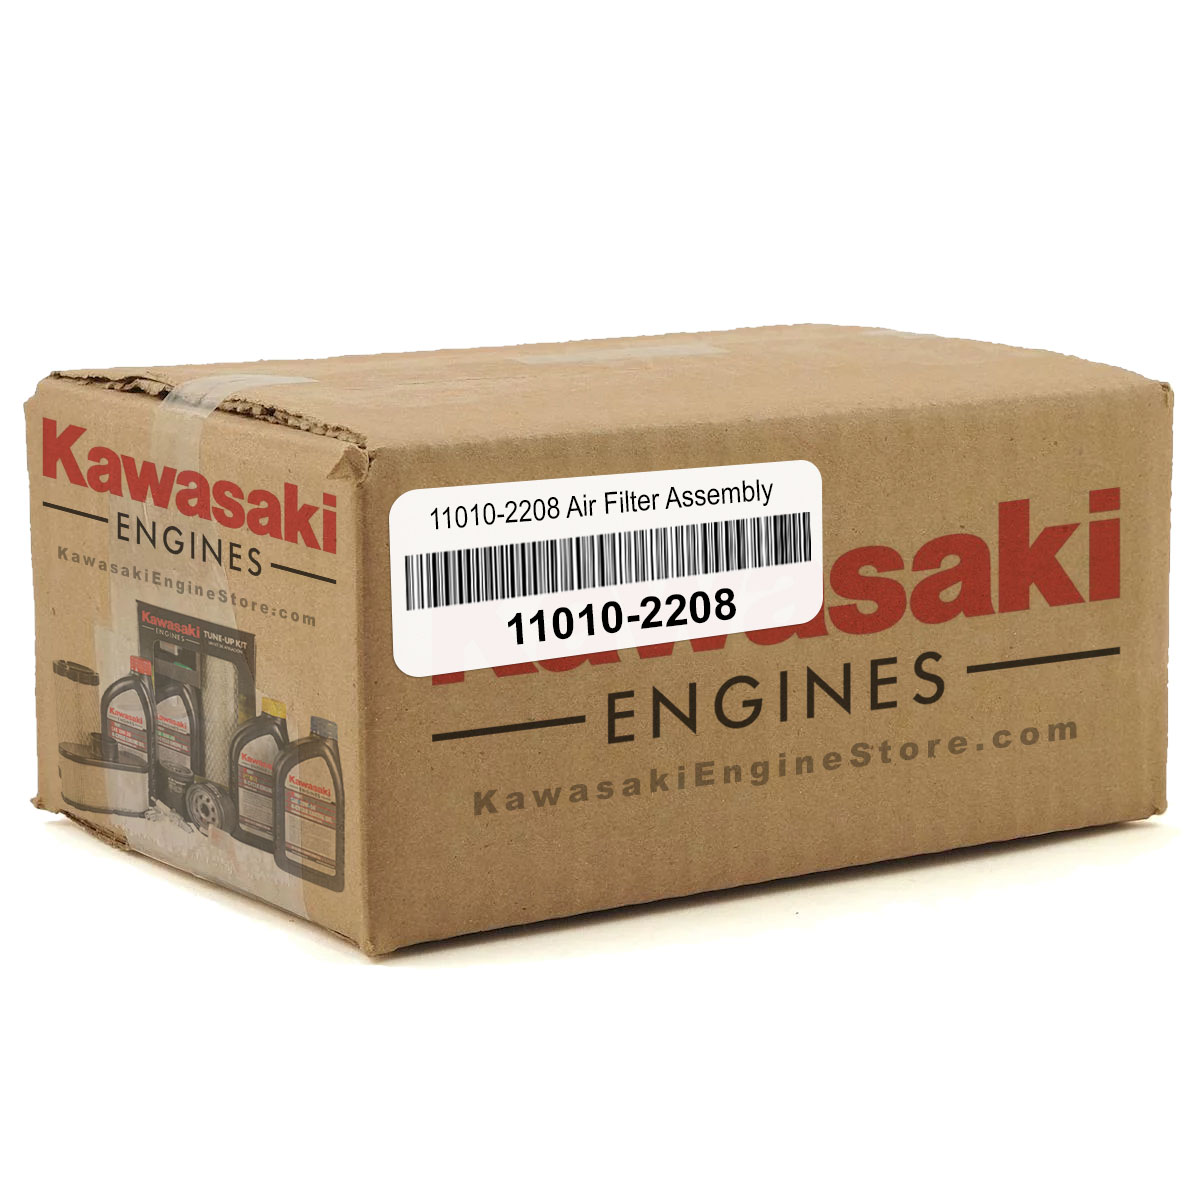 Kawasaki 11010-2208 Air Filter Assembly